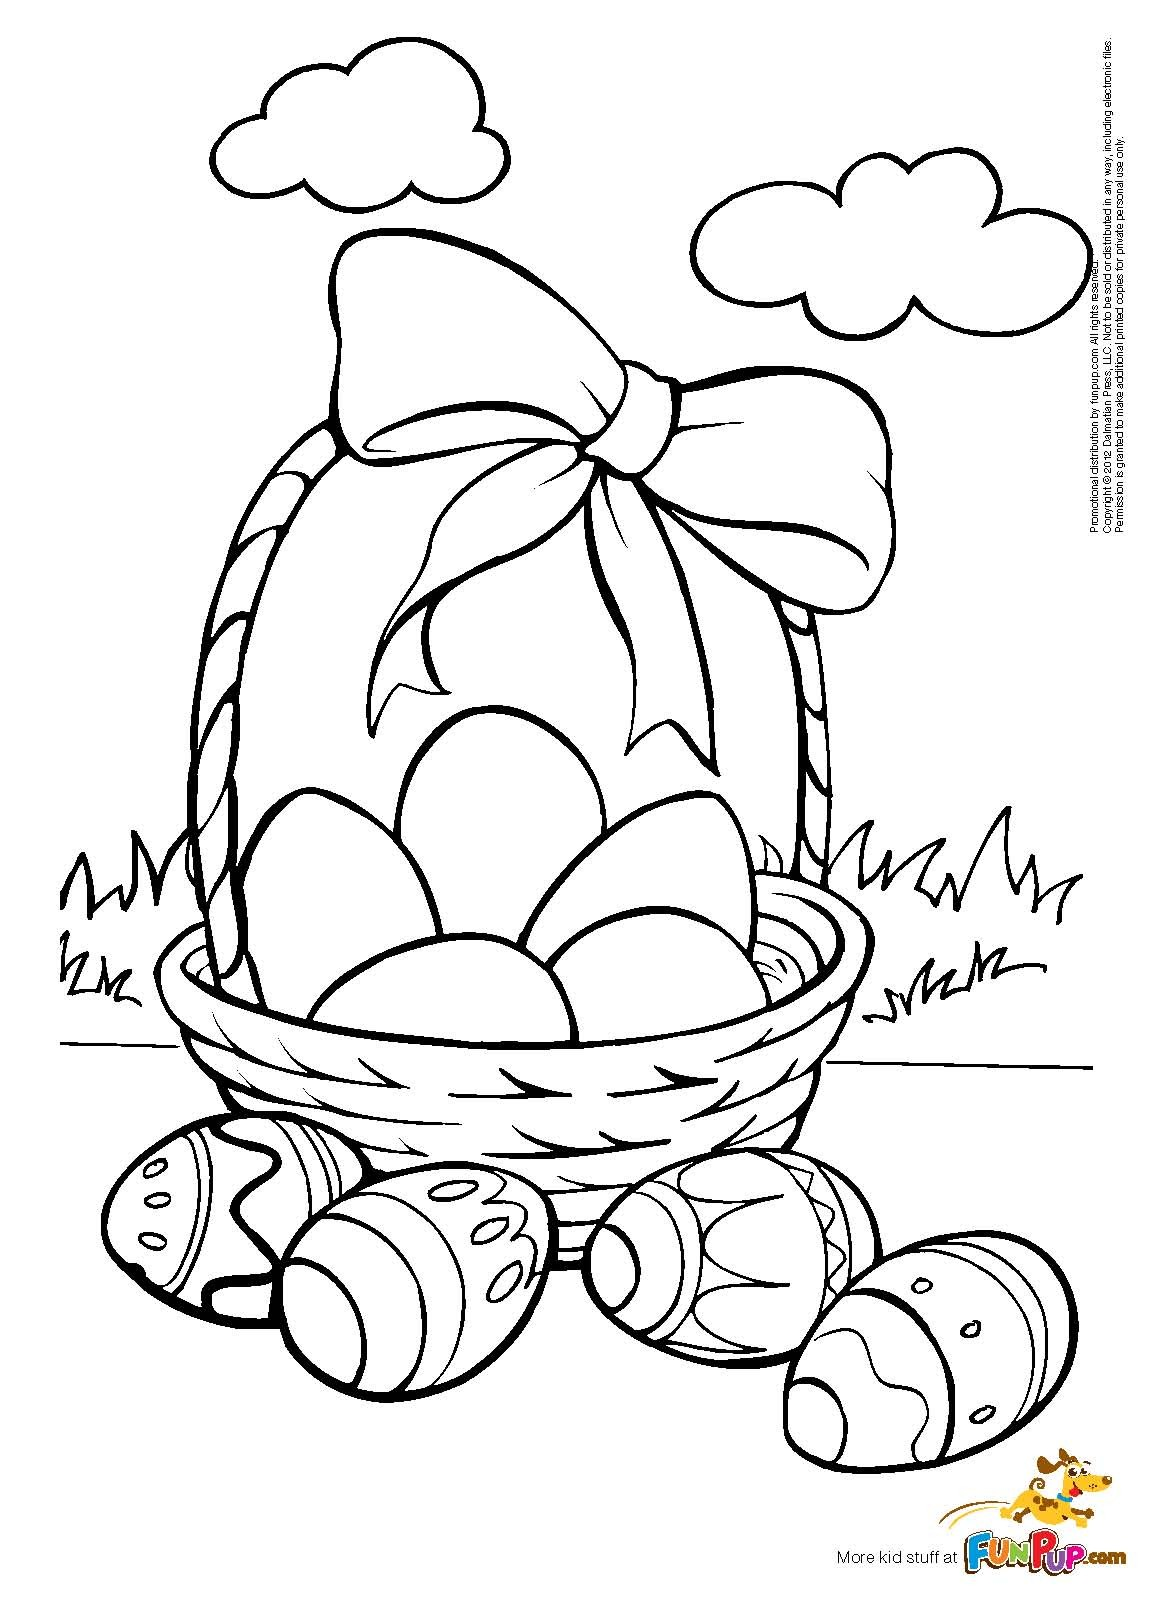 march coloring book pages - photo#6